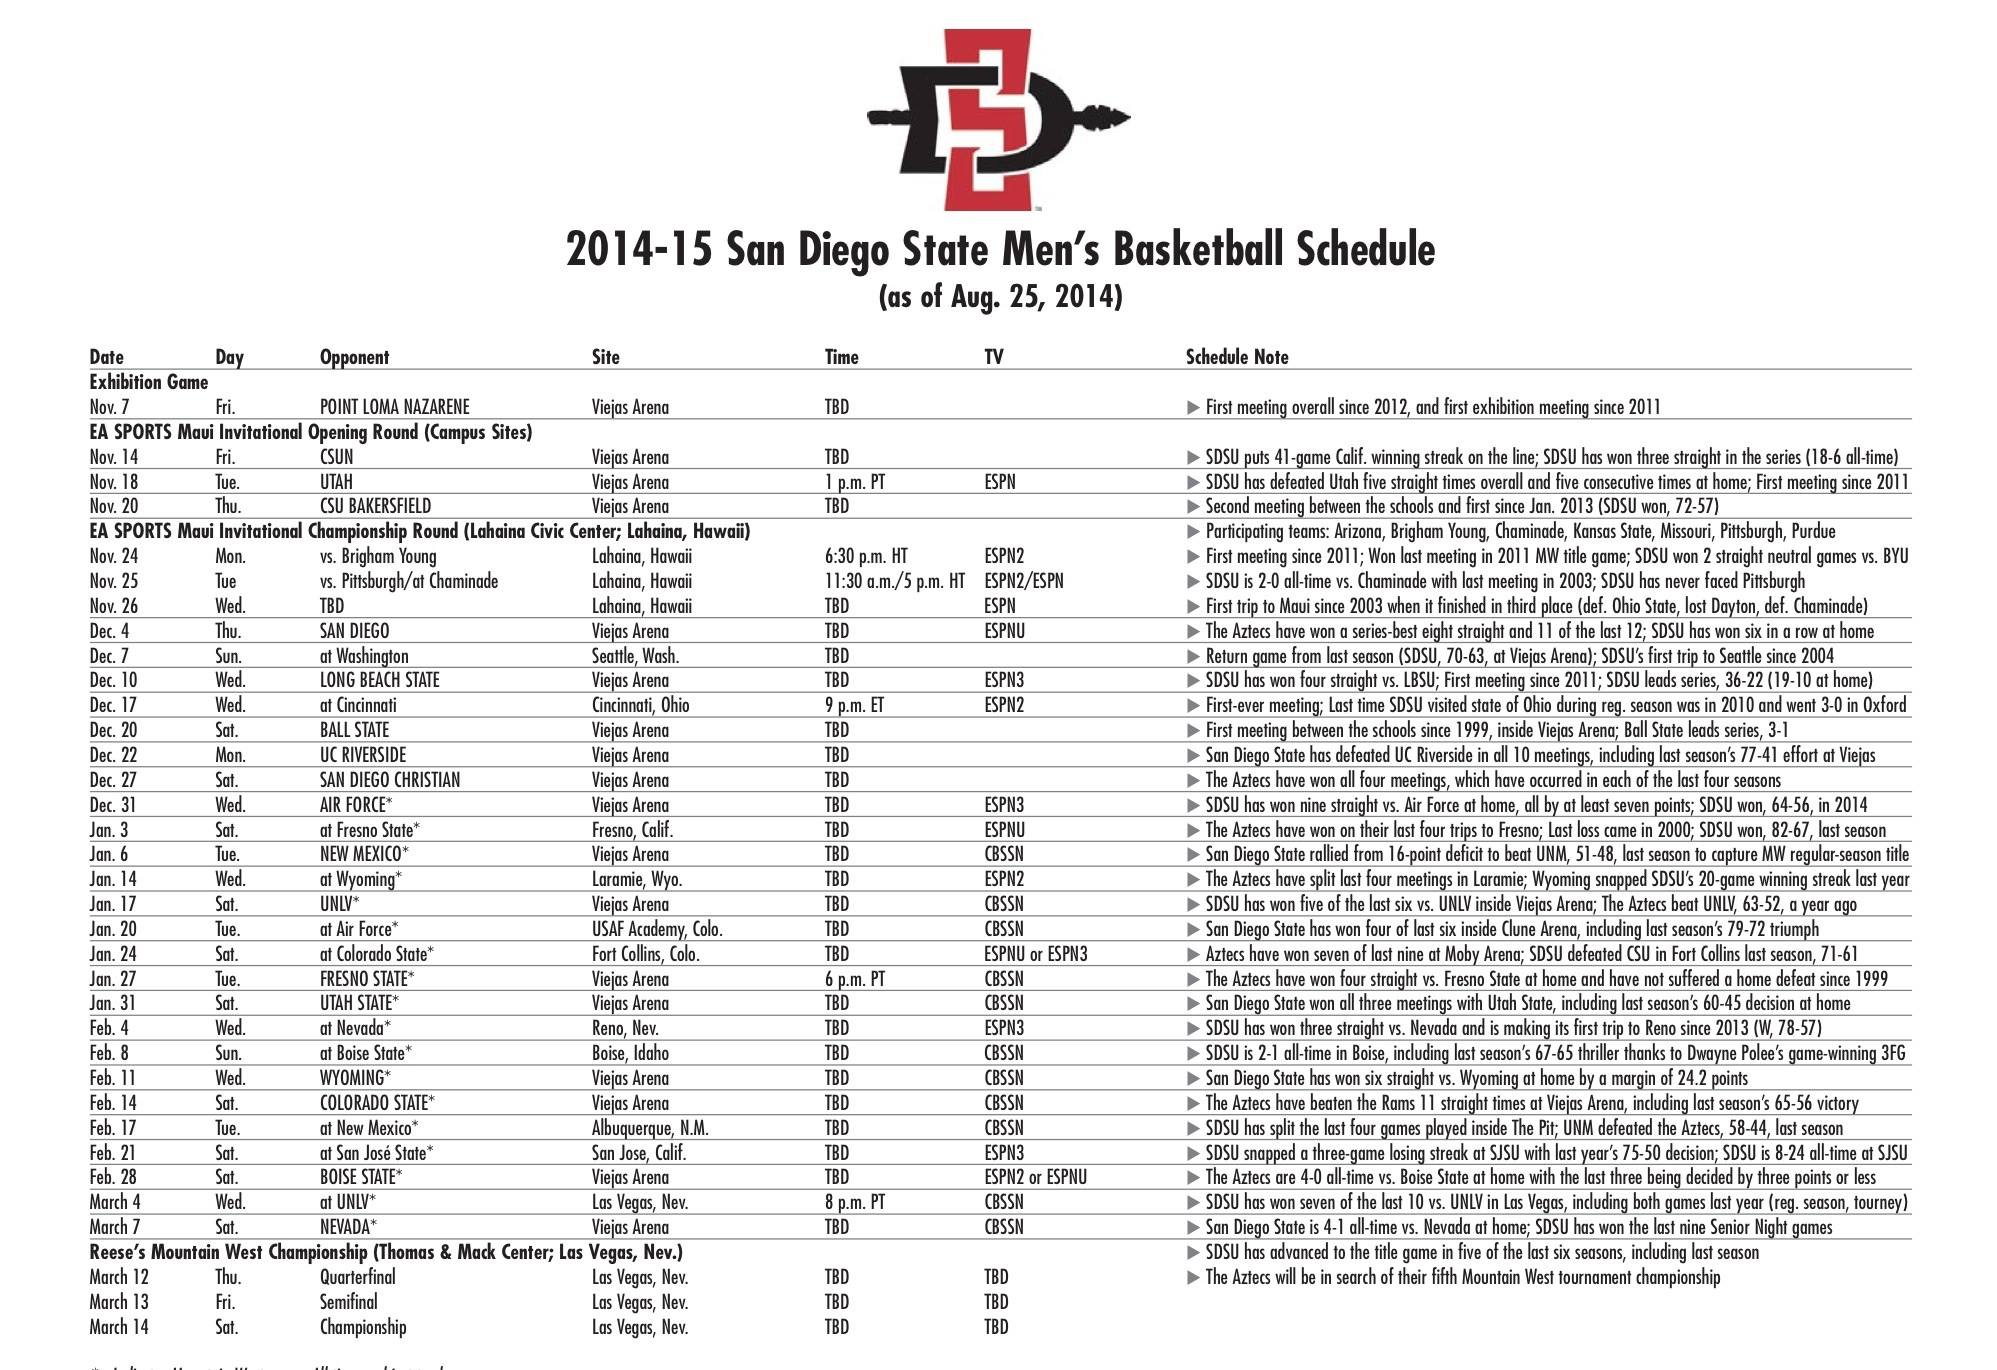 San Diego State Releases 2014/15 Men's Basketball Schedule – San